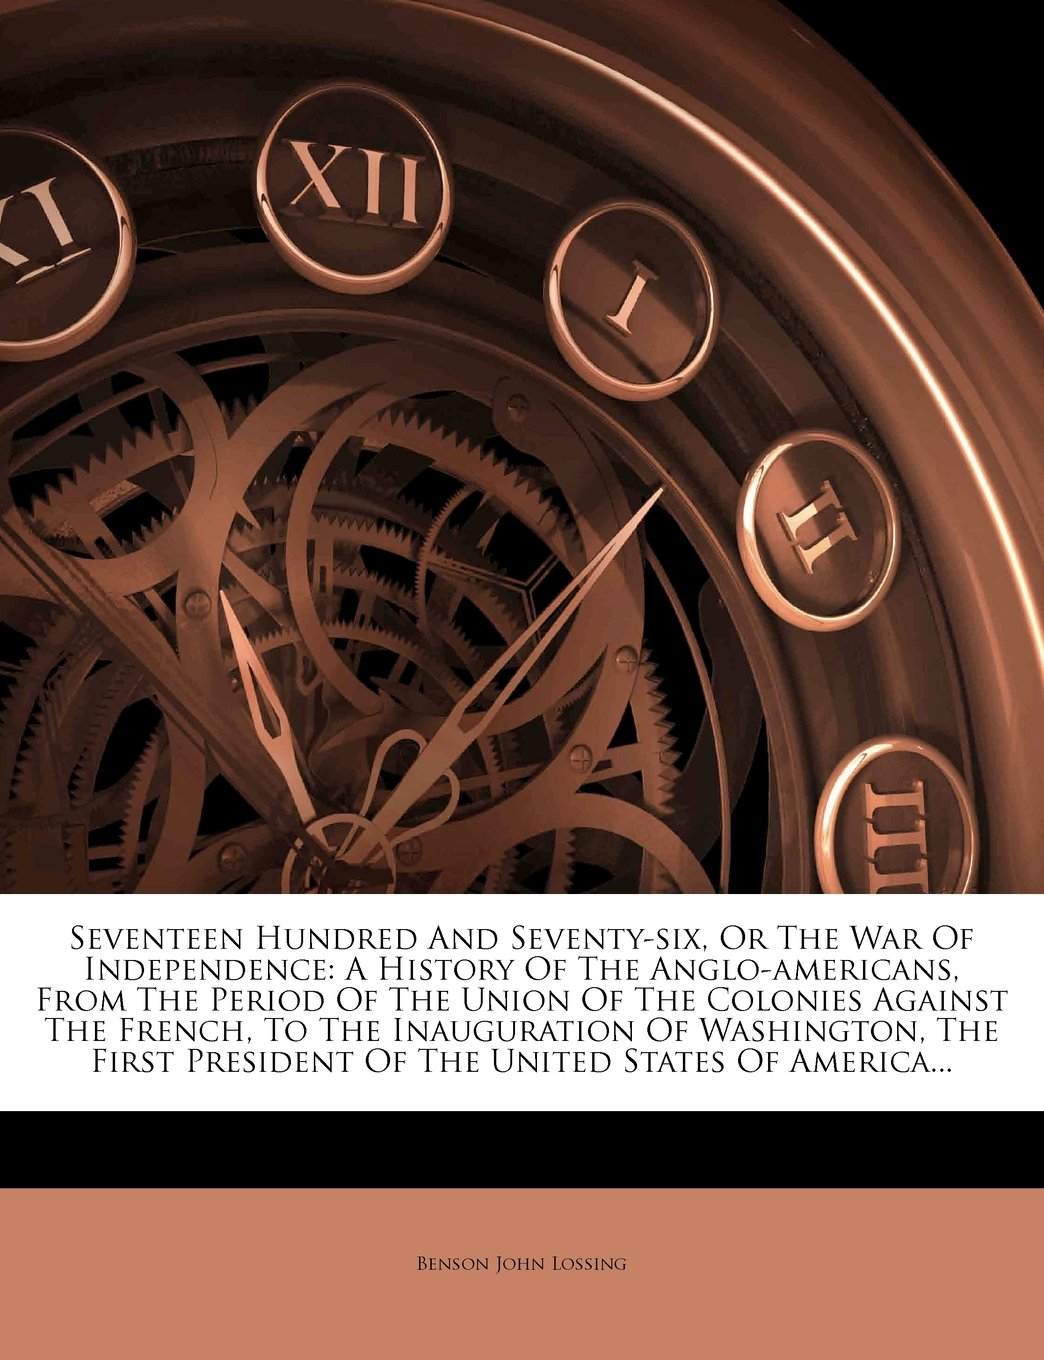 Seventeen Hundred And Seventy-six, Or The War Of Independence: A History Of The Anglo-americans, From The Period Of The Union Of The Colonies Against ... President Of The United States Of America... ebook